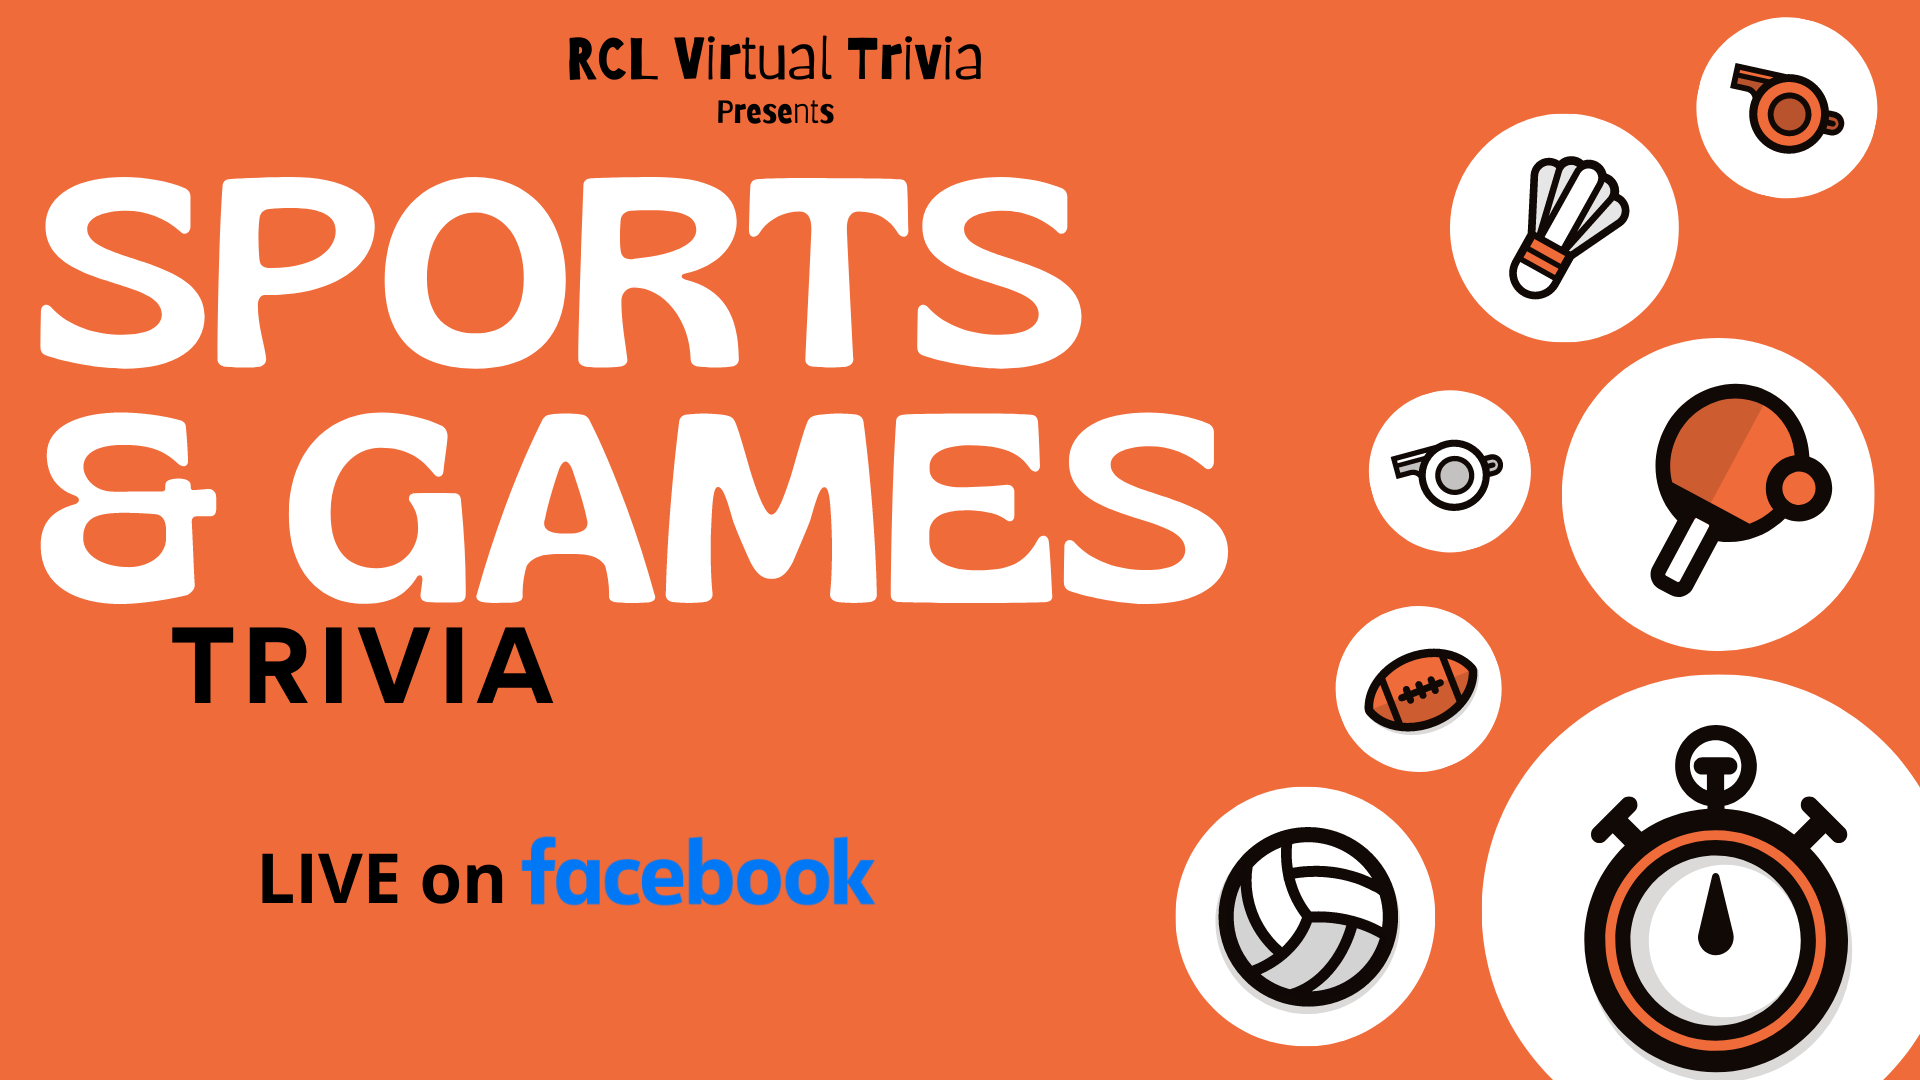 Sports & Games Trivia on Facebook Live